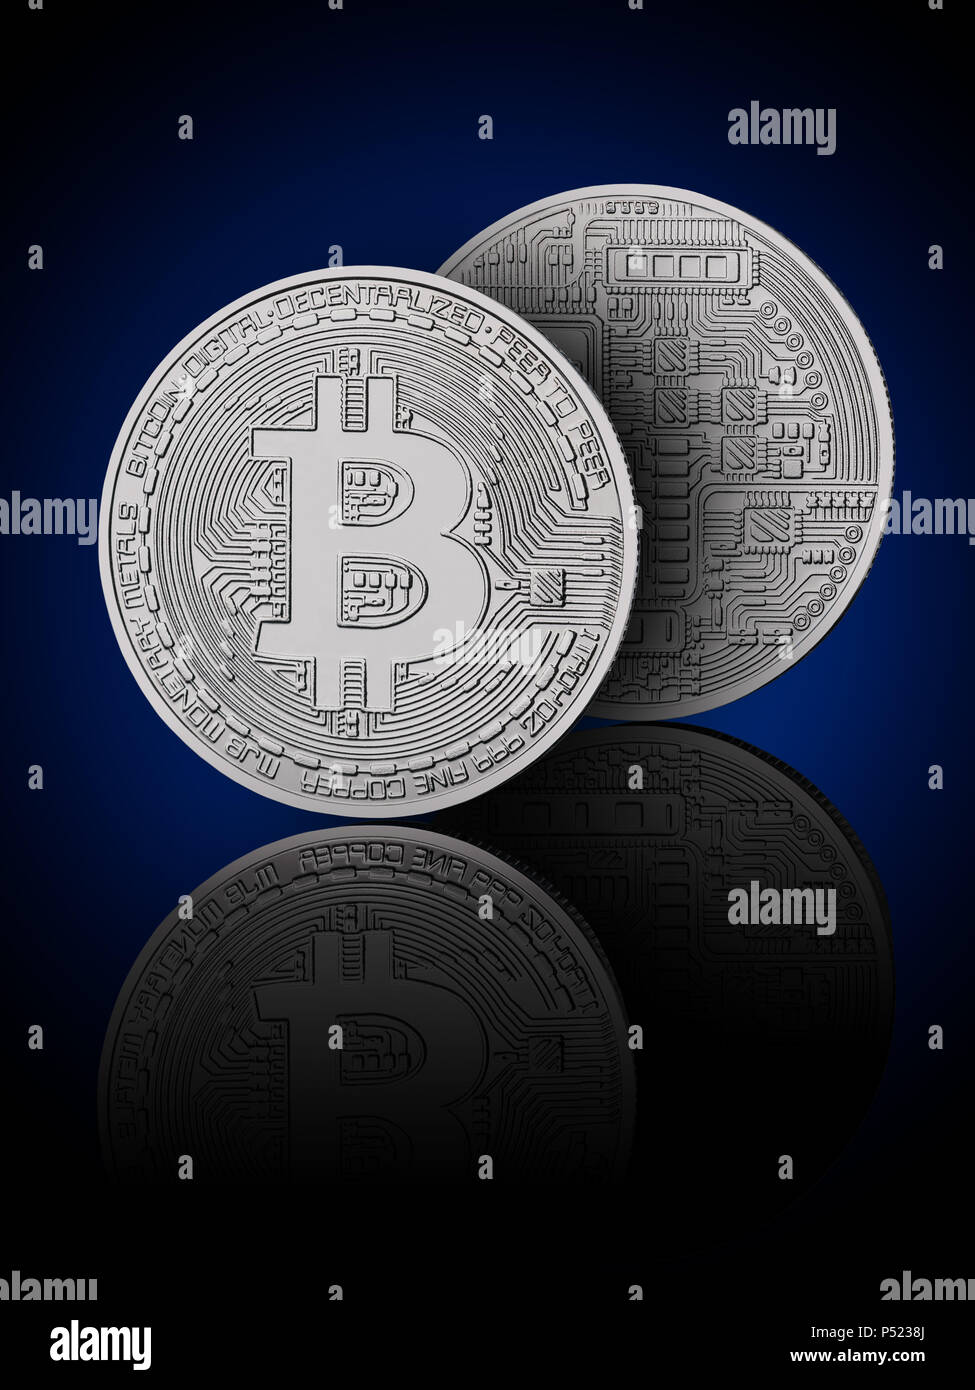 Bitcoin on black background with reflection. Obverse and reverse Stock Photo